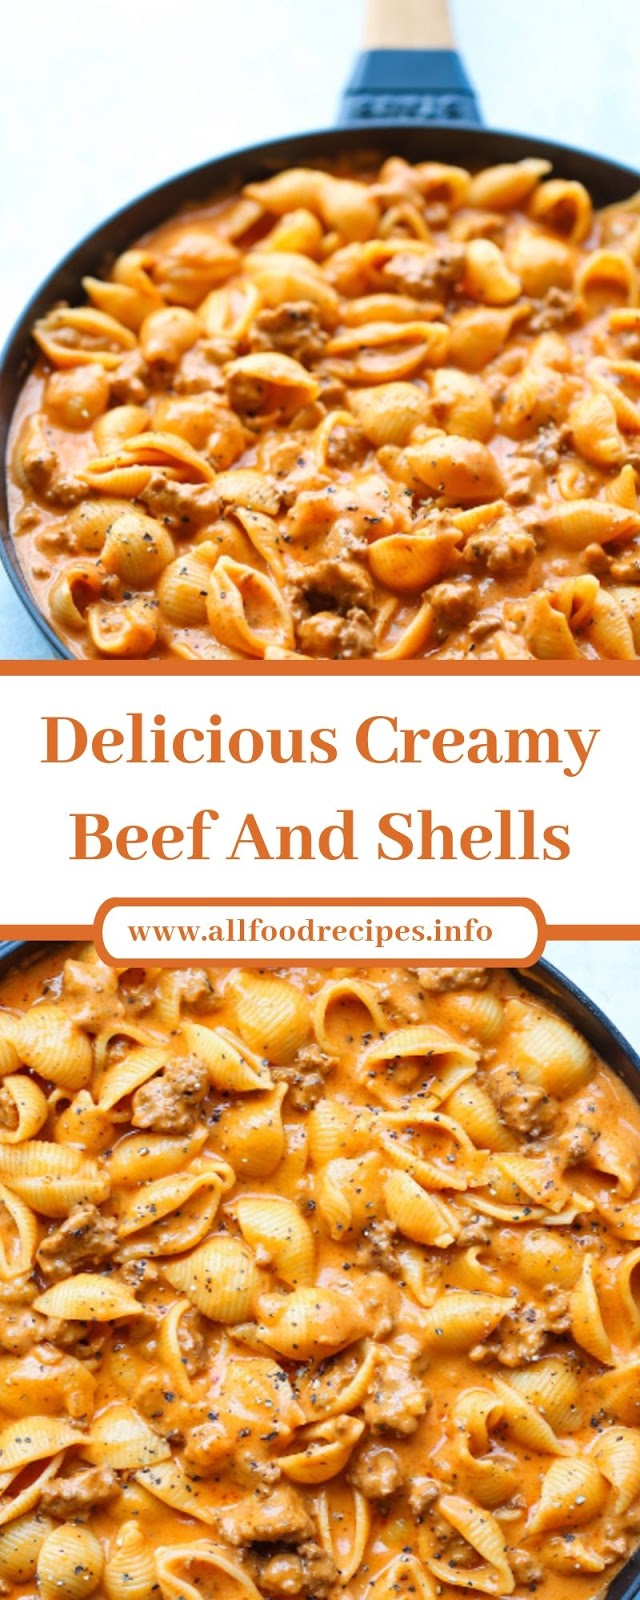 Delicious Creamy Beef And Shells